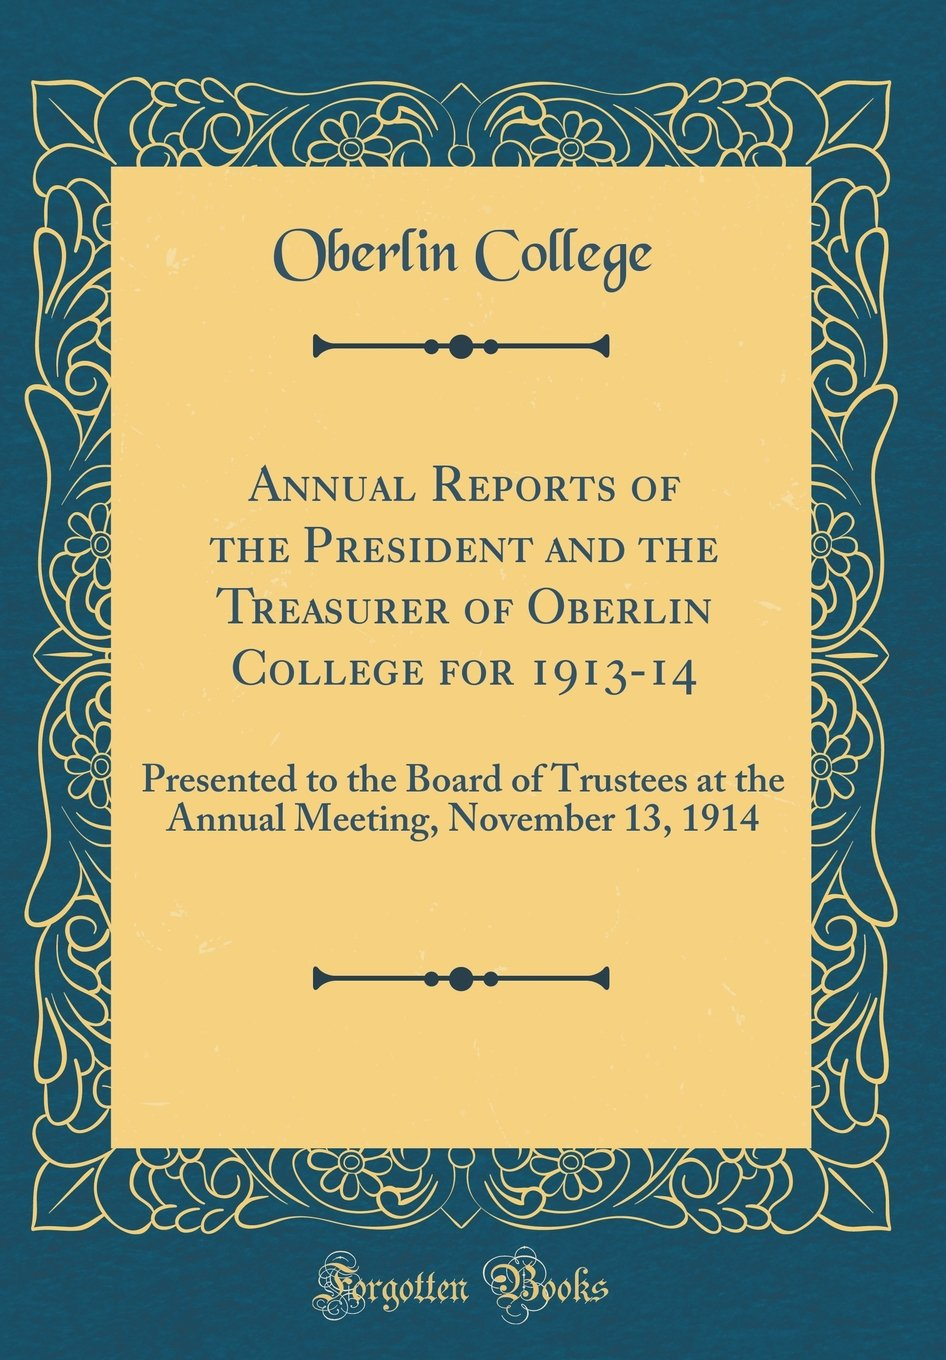 Annual Reports of the President and the Treasurer of Oberlin College for 1913-14: Presented to the Board of Trustees at the Annual Meeting, November 13, 1914 (Classic Reprint) pdf